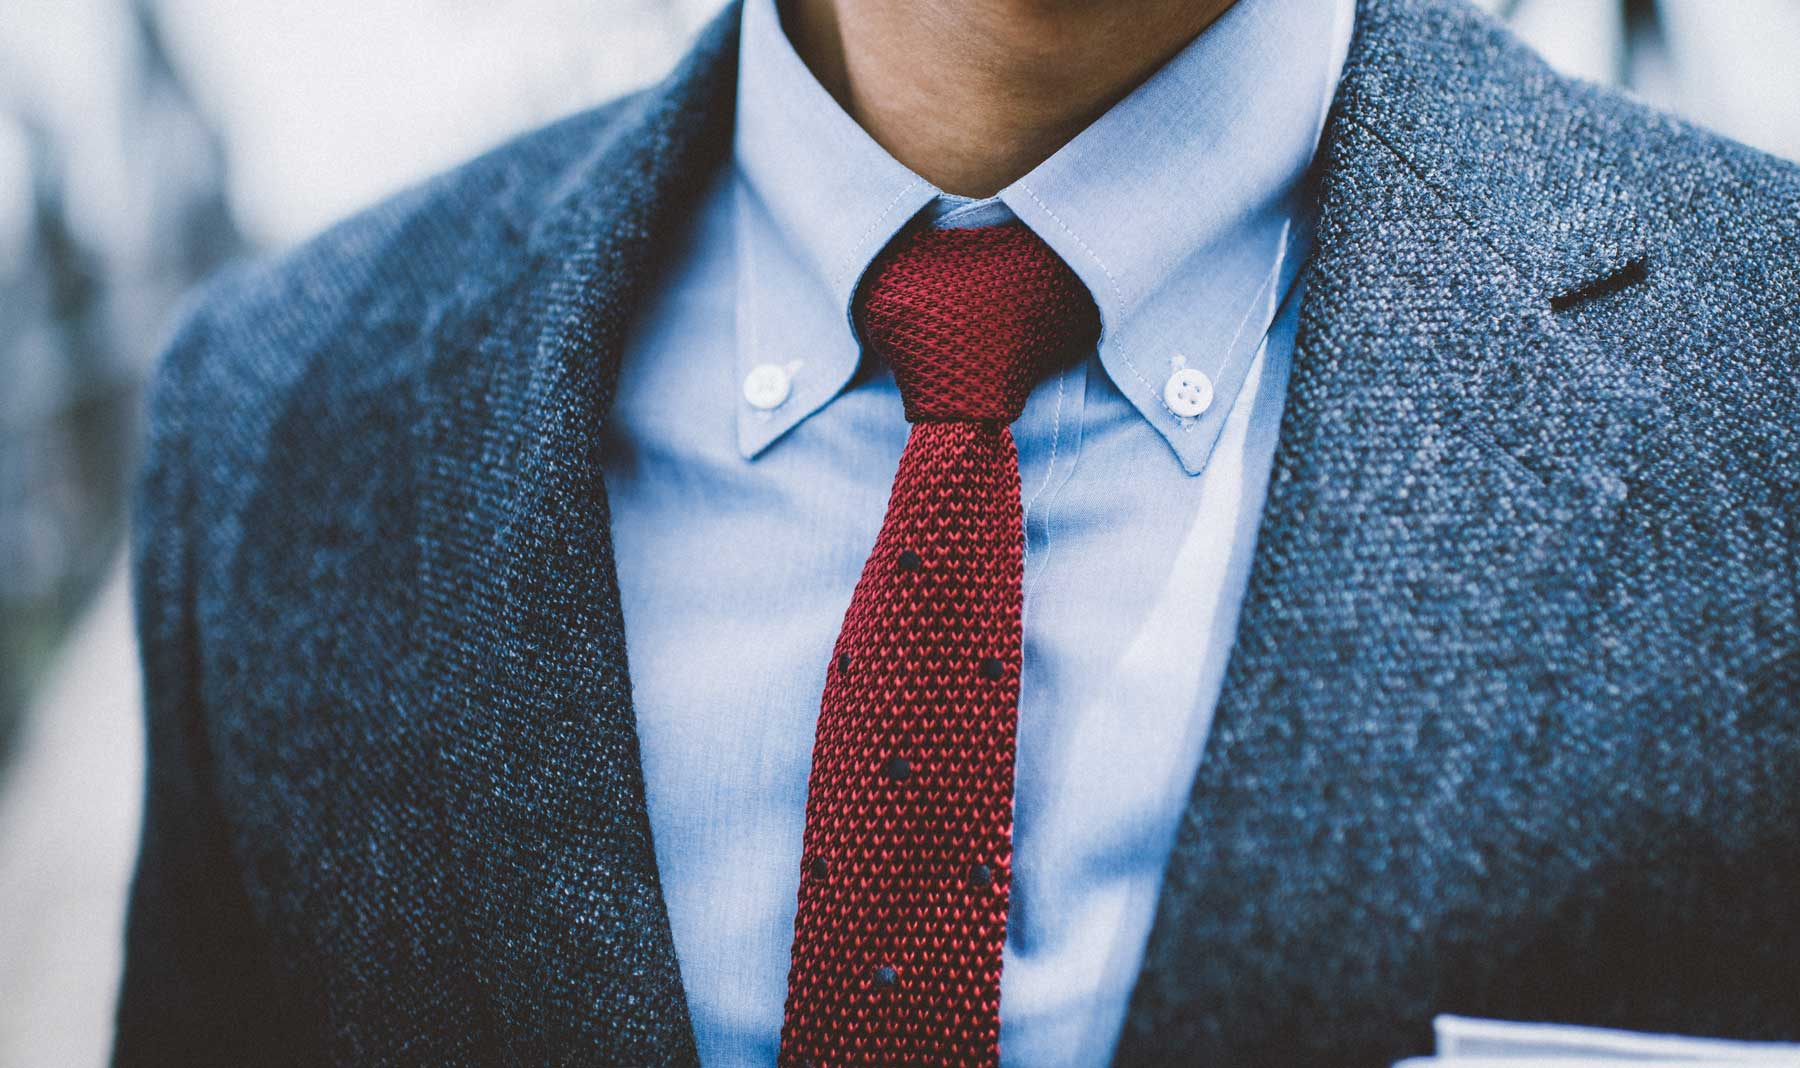 Dress it up or down, the button-down collar looks GOOD